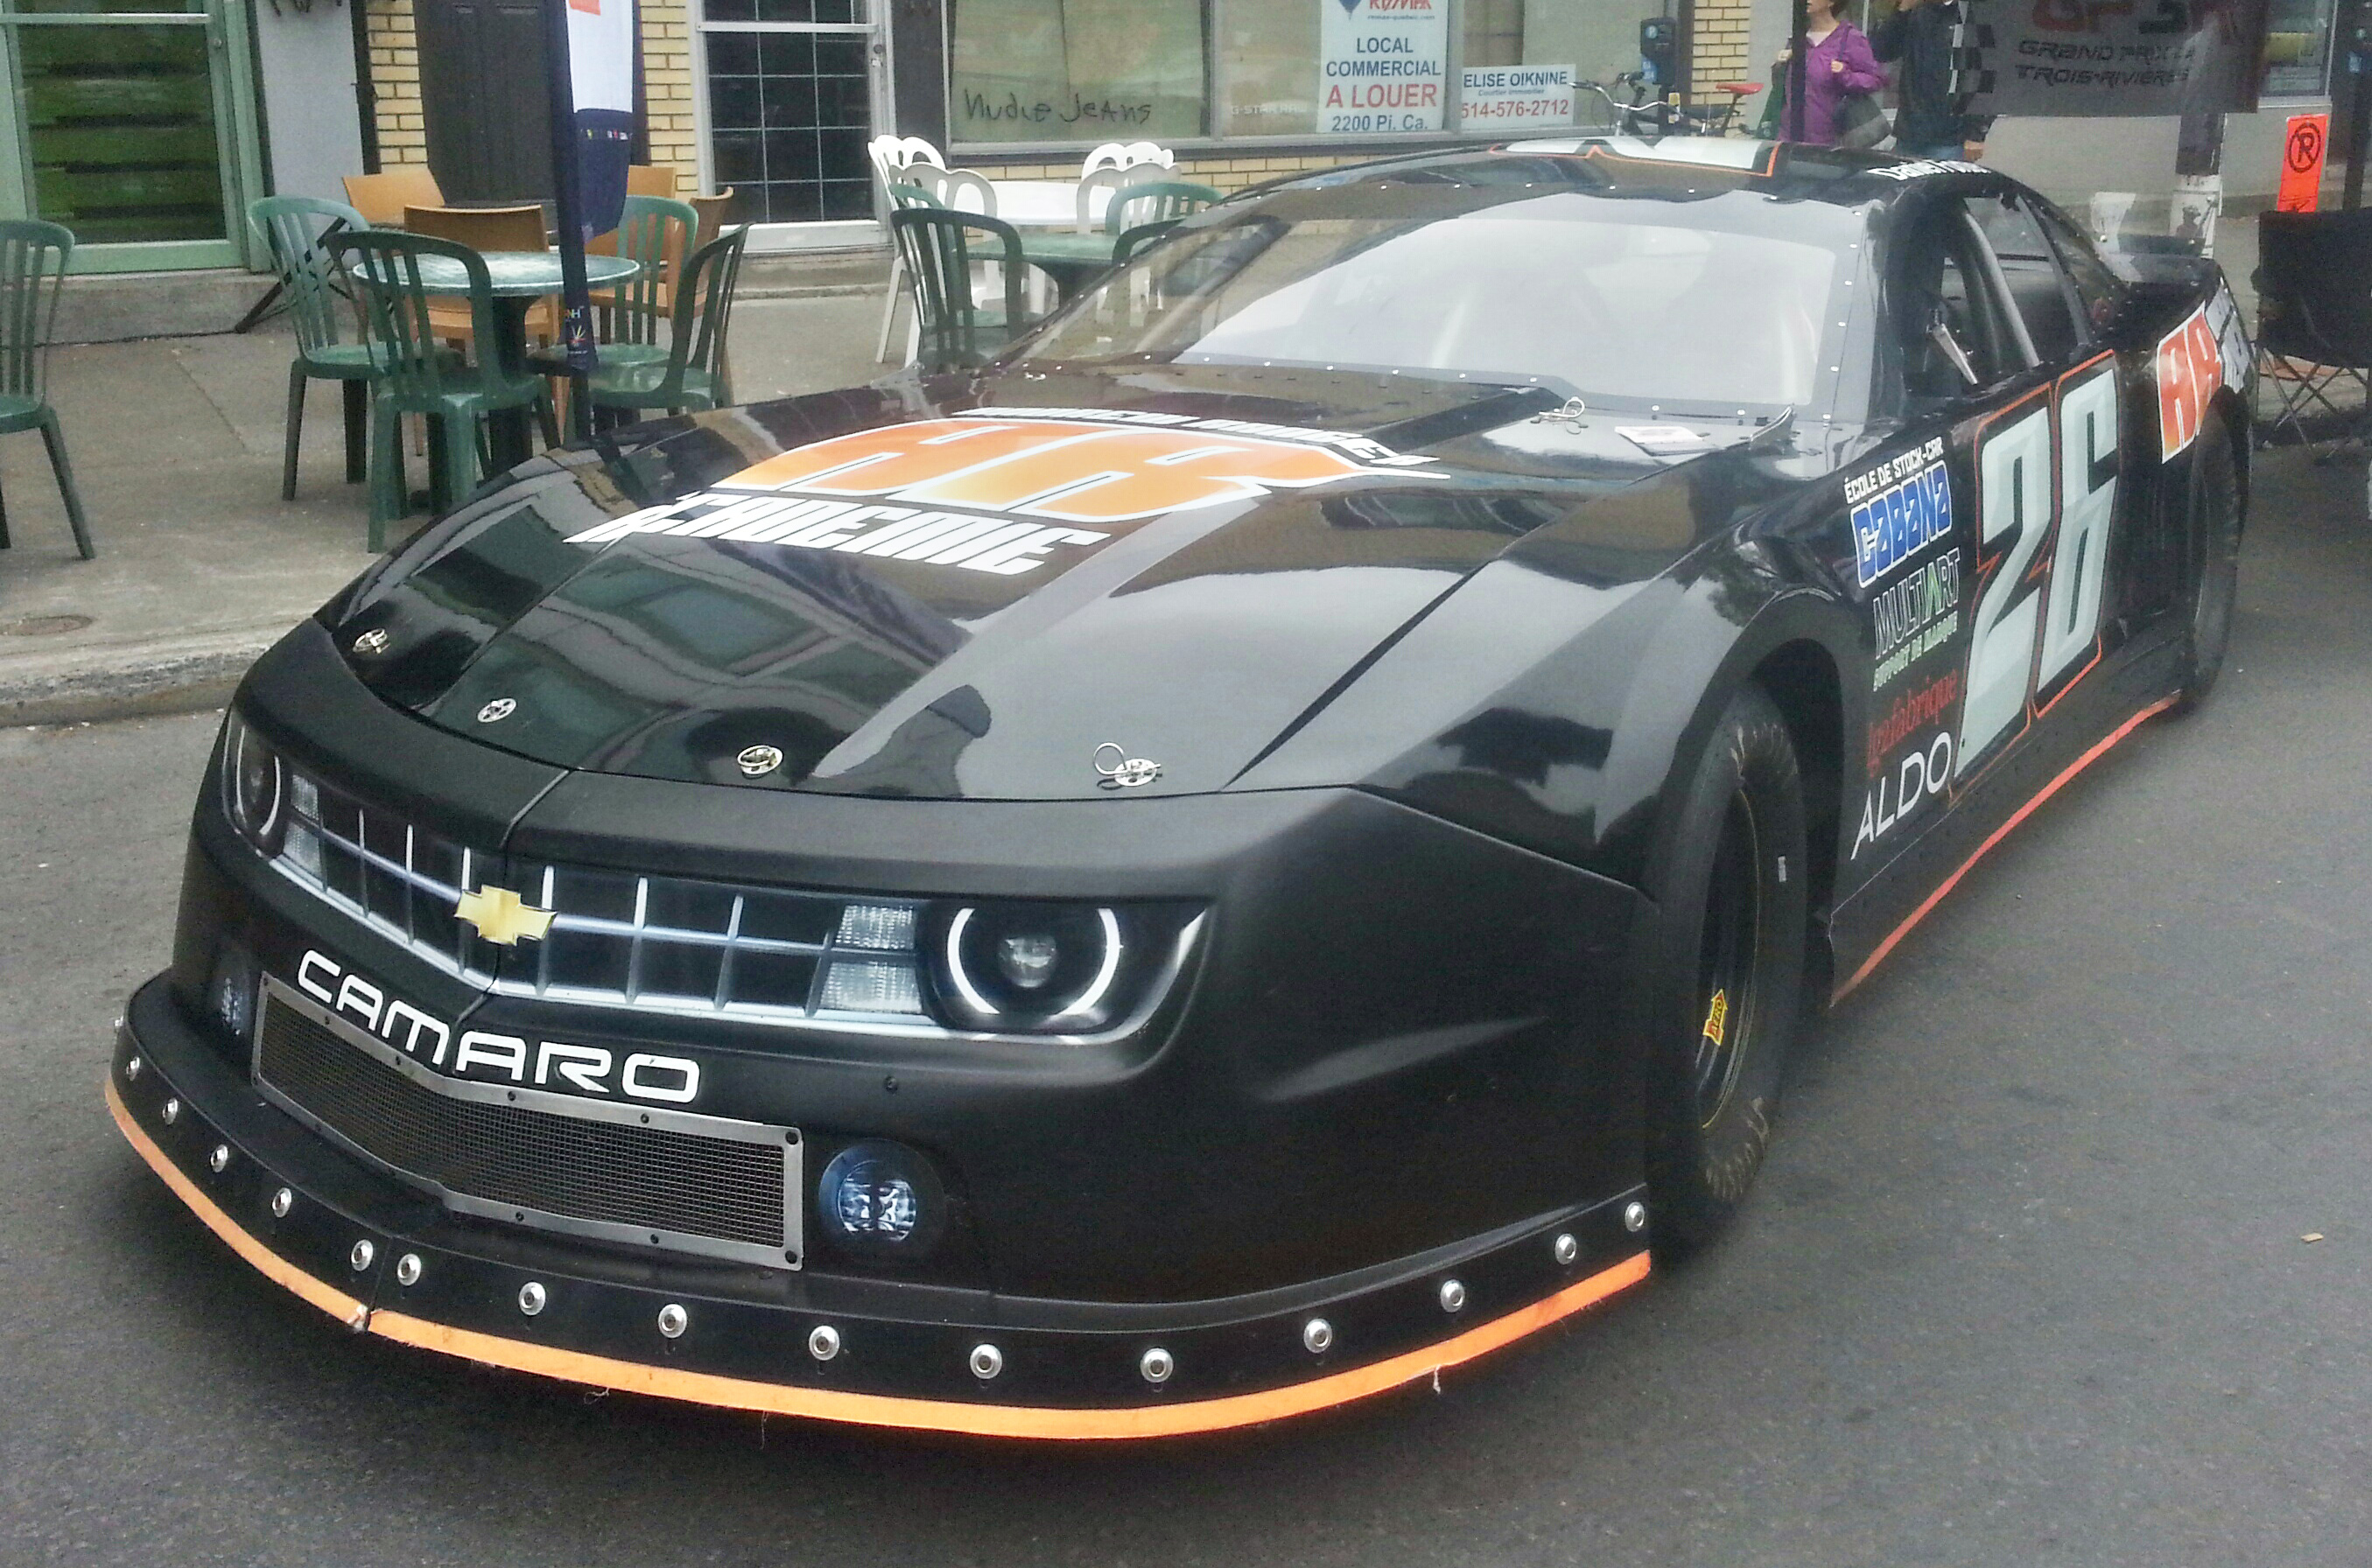 File Chevrolet Camaro petition Car Street Festival 16